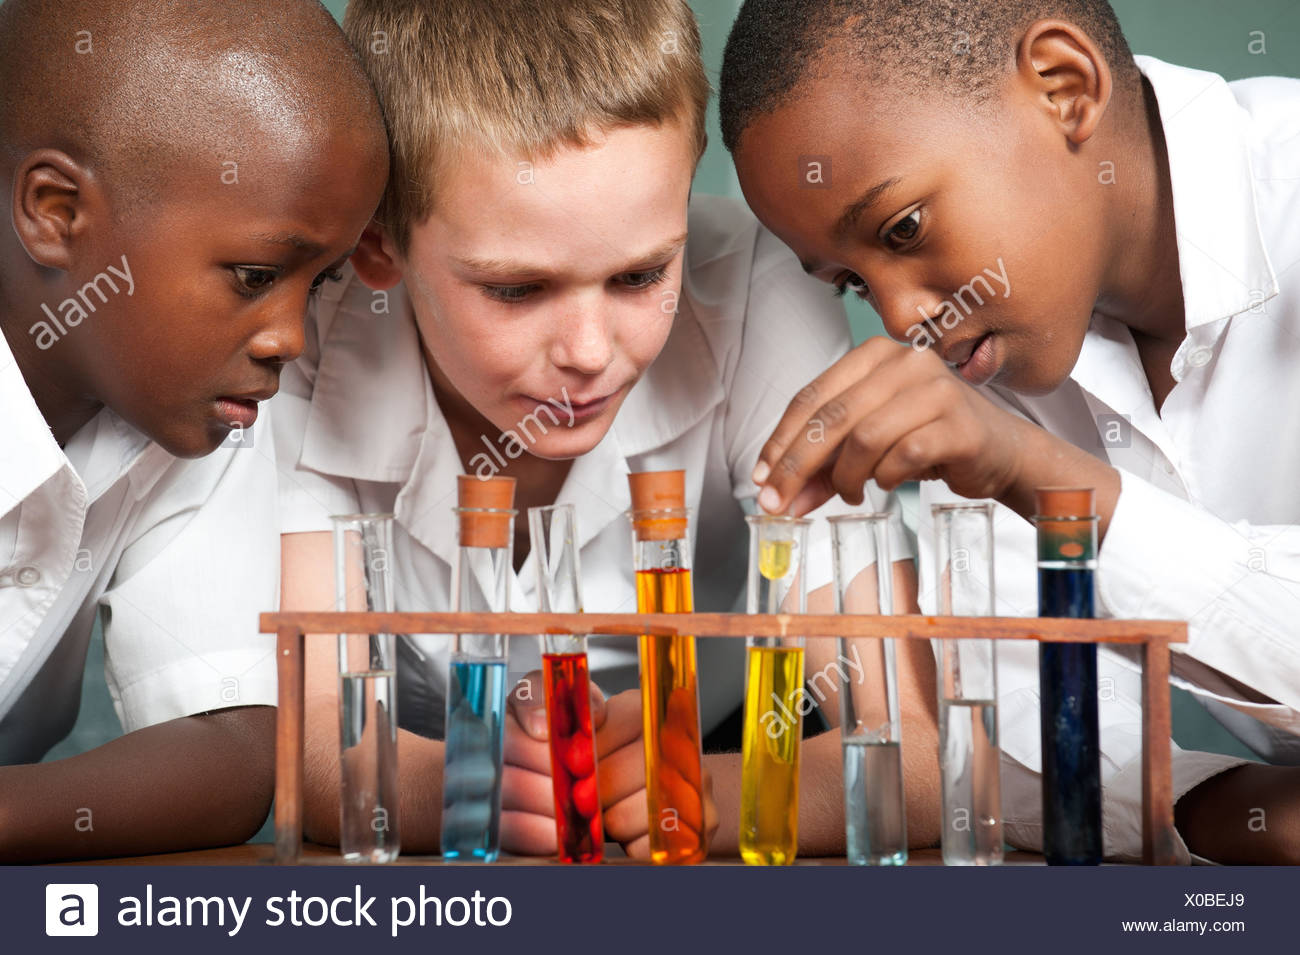 Three boys looking at test tubes in classroom, Johannesburg, Gauteng Province, South Africa - Stock Image